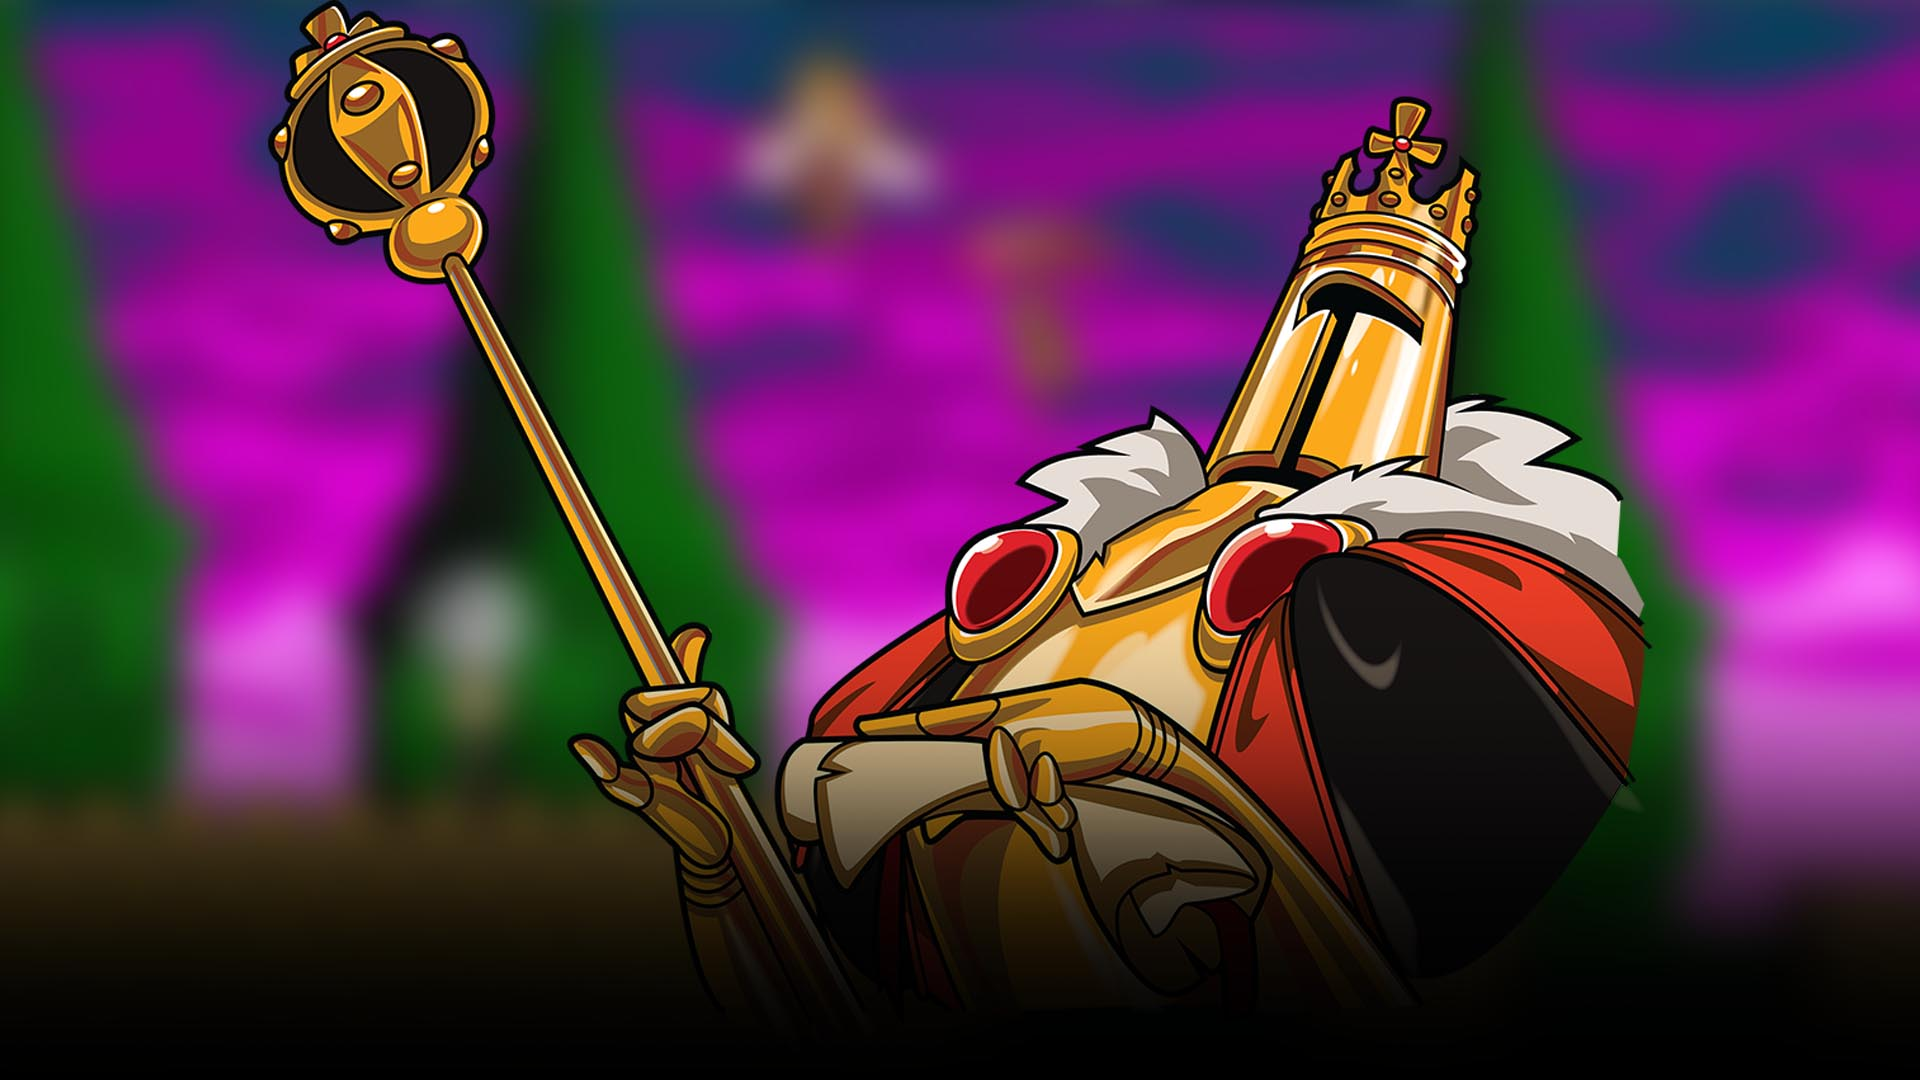 King Knight Story To Make Its Grand Shovel Knight Debut At